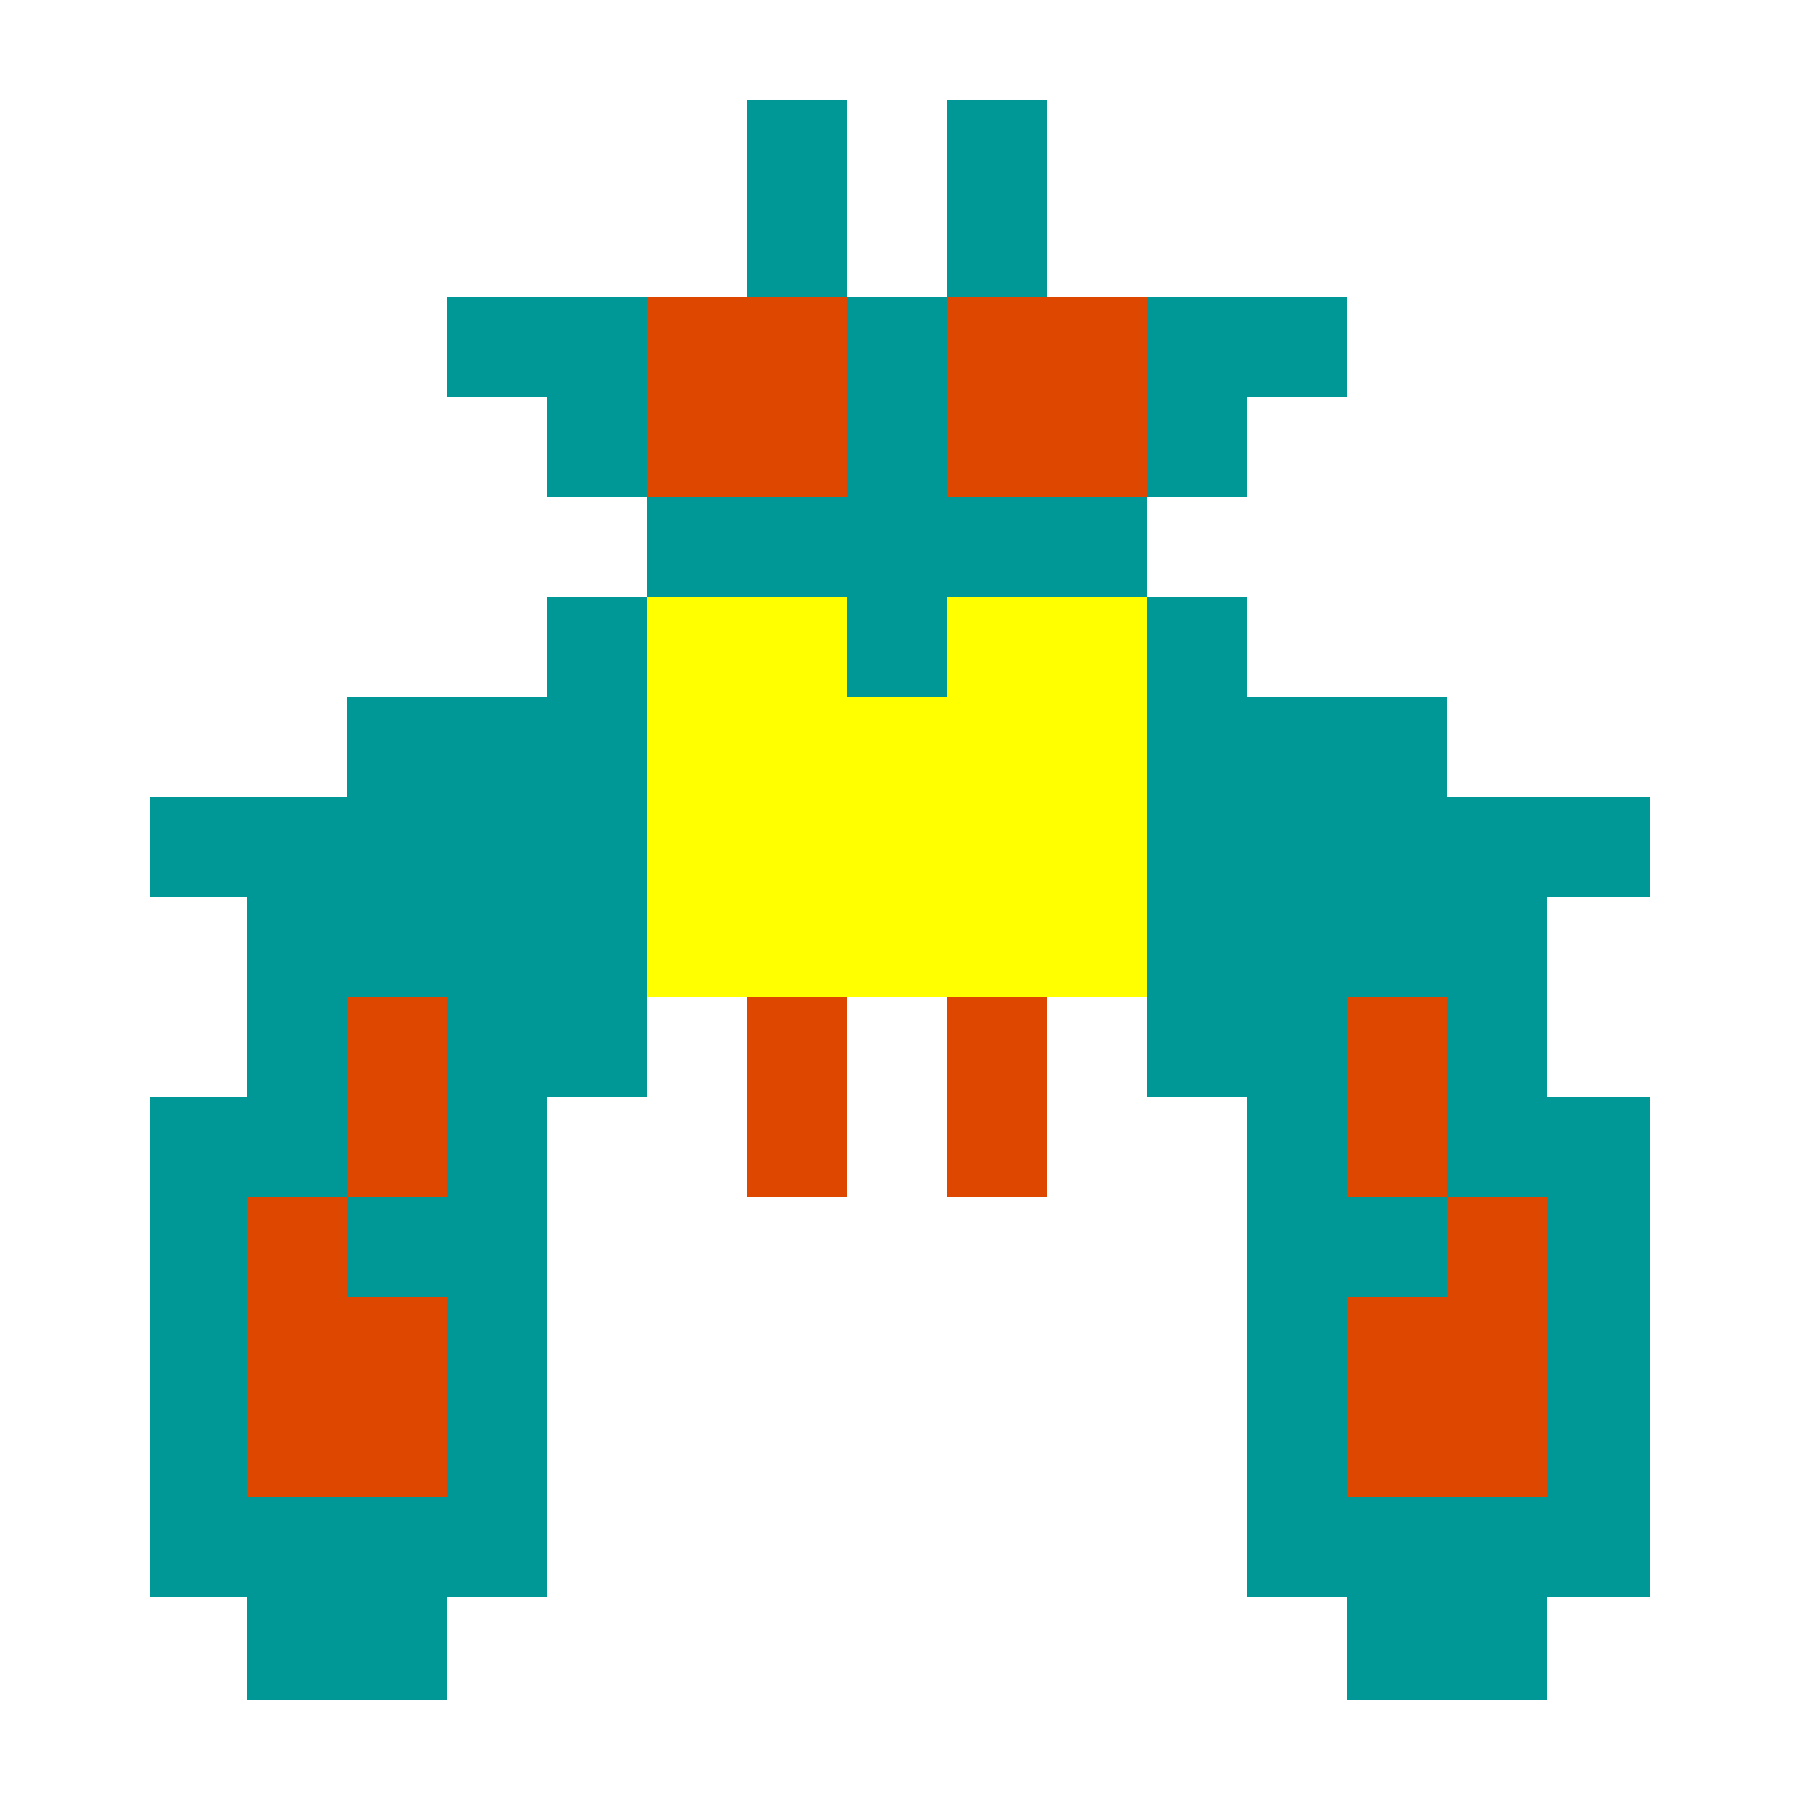 Angle Symmetry Space Galaxian Invaders Galaga PNG Image